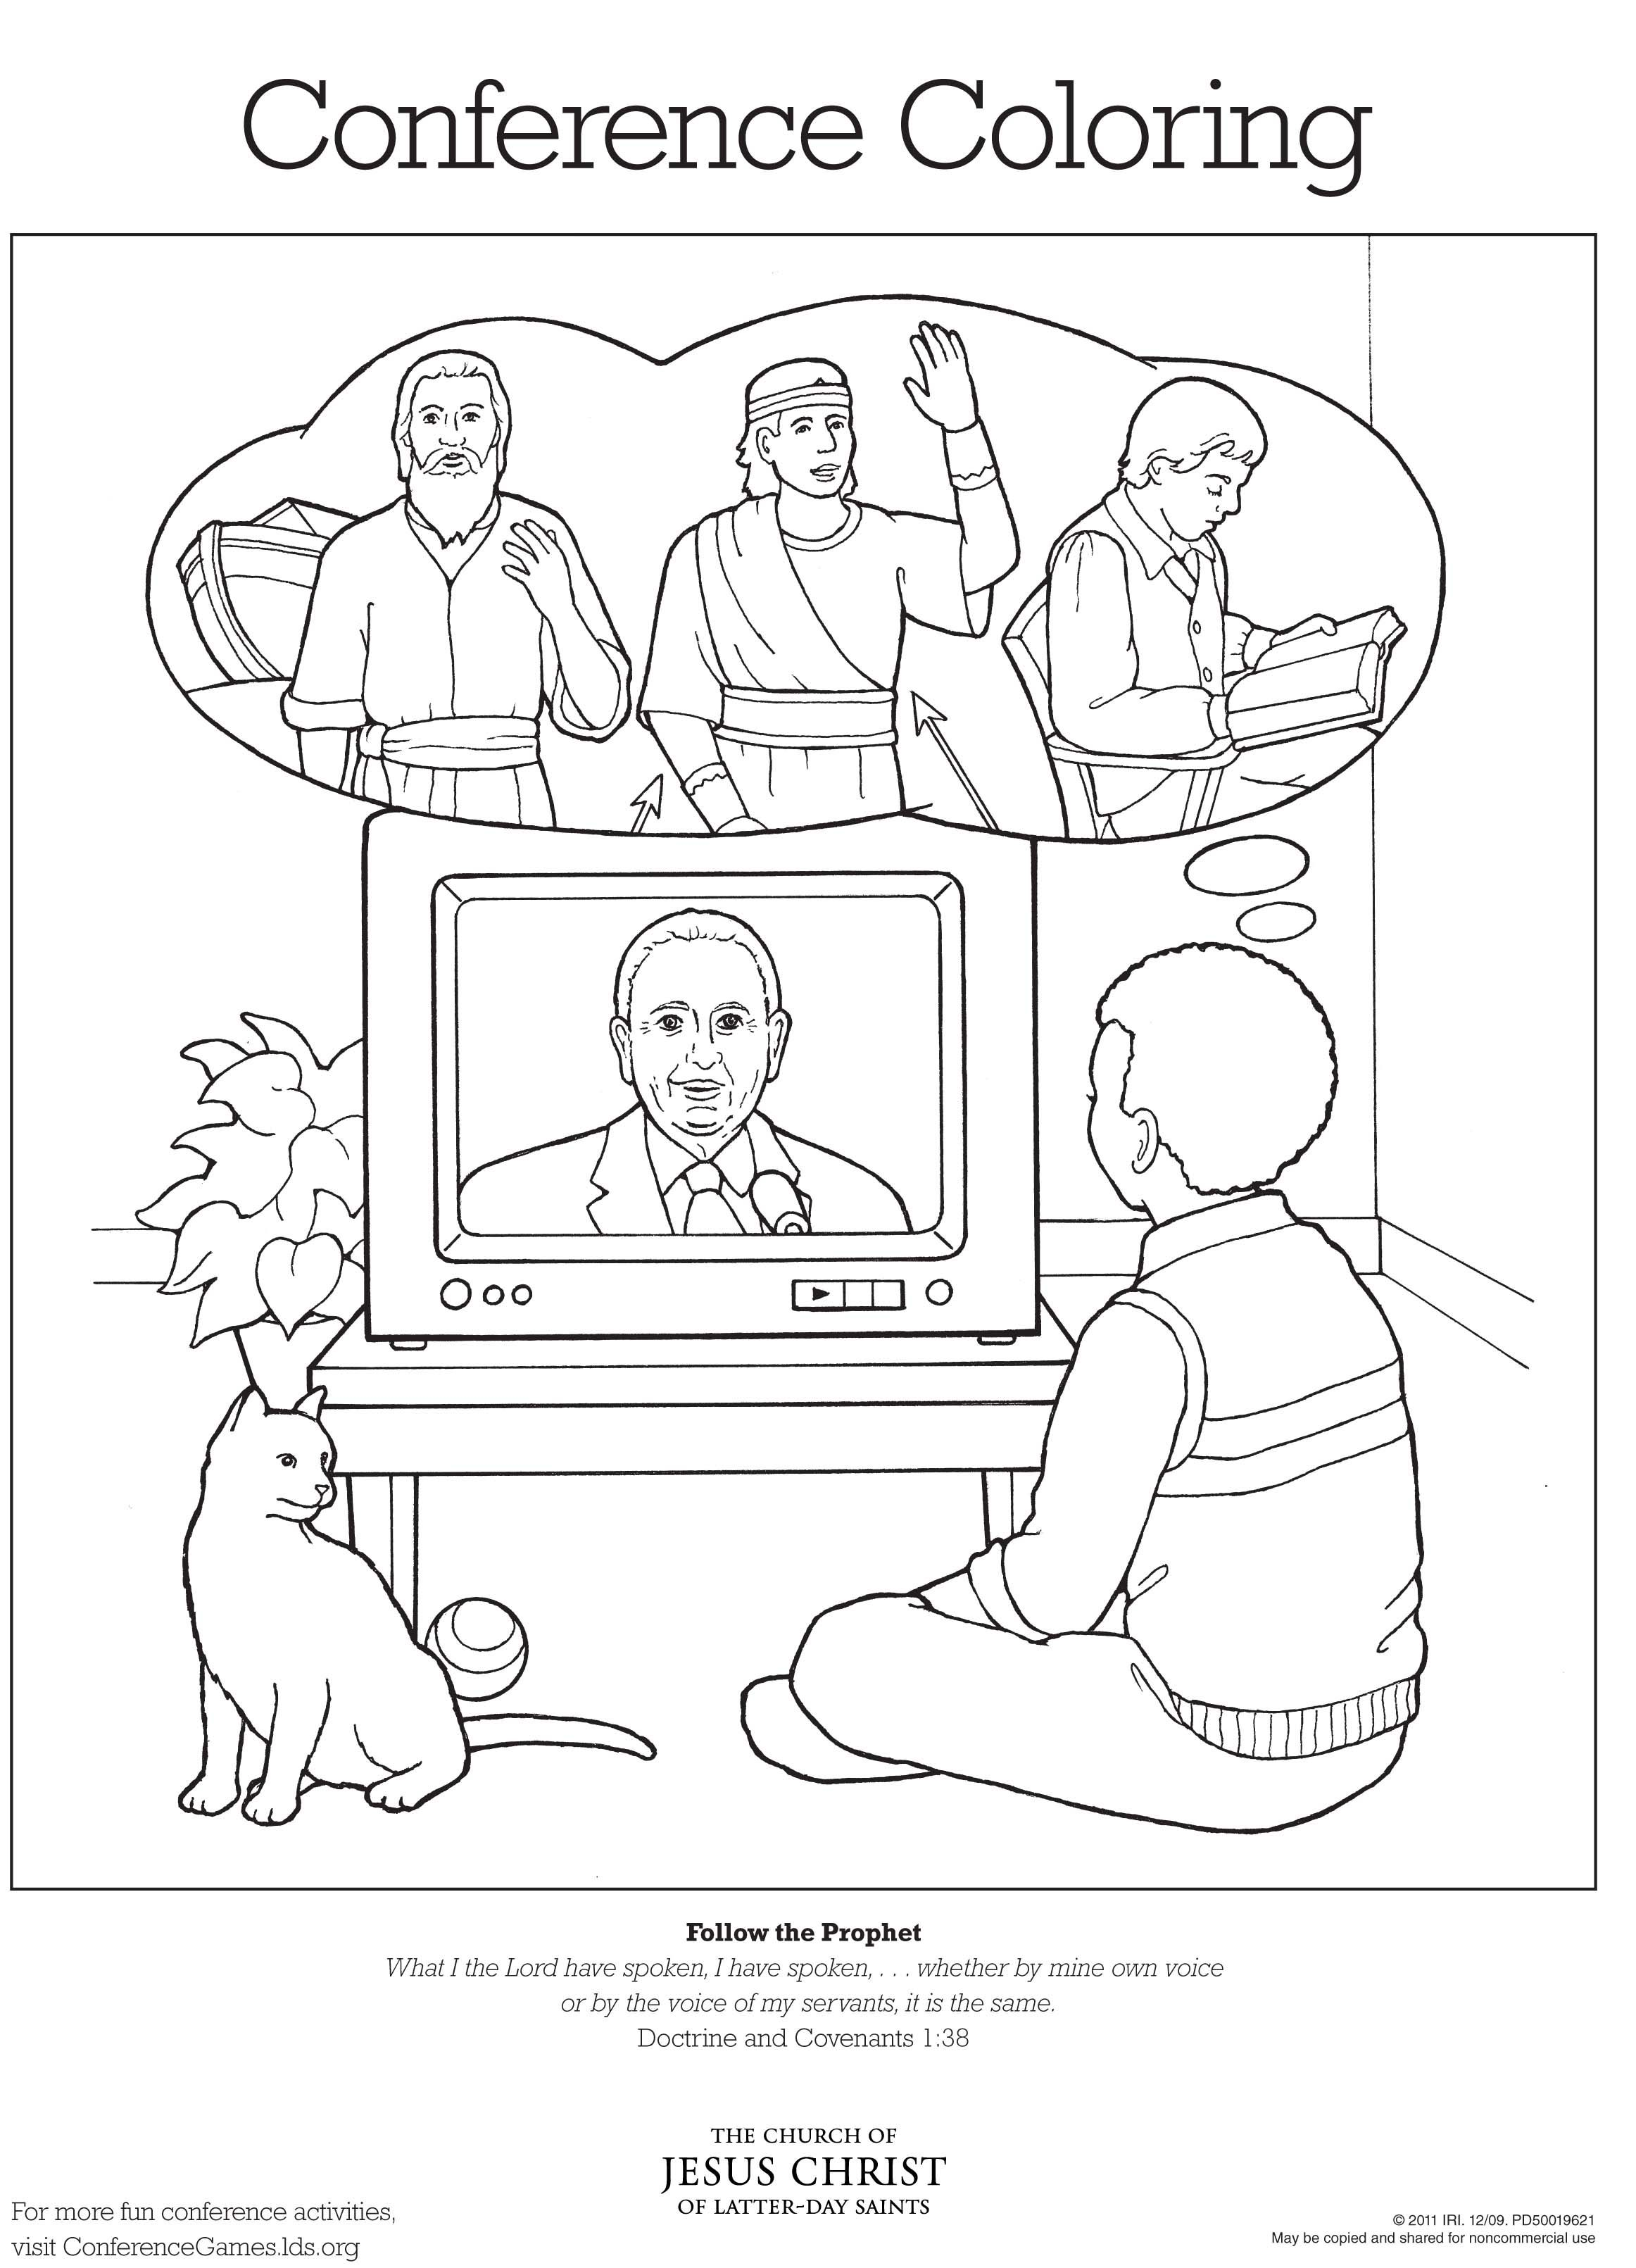 General Conference Coloring Pages Conference Coloring Page 1  Colour Book And Sunday School